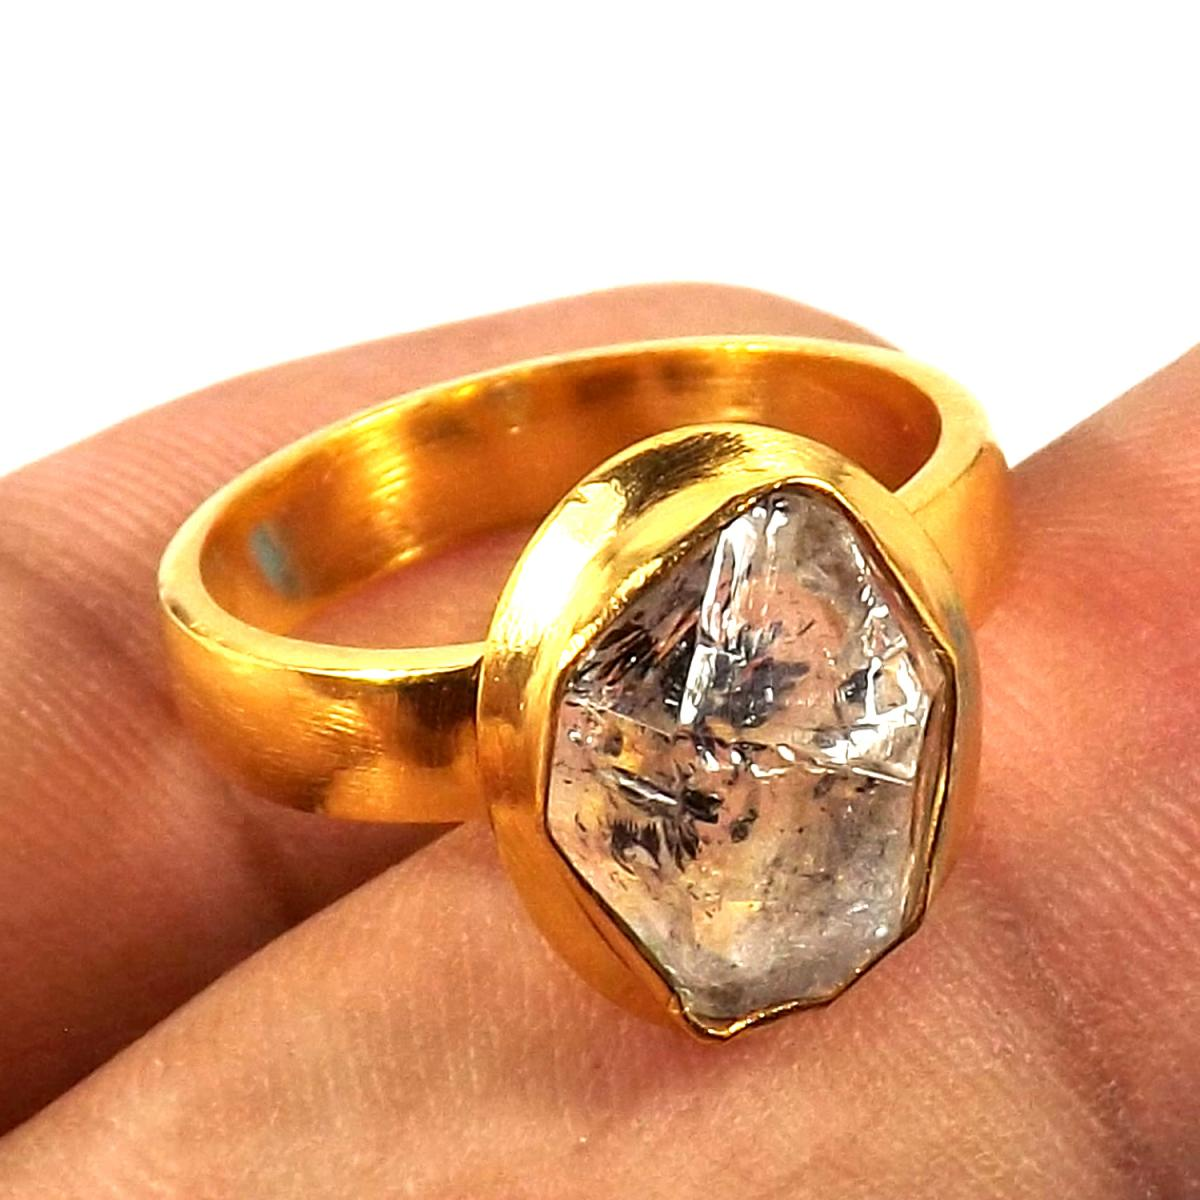 rings handmade gold luxury catherine lucia ring choose in jewellery gemstone fine your this centre beautiful st best